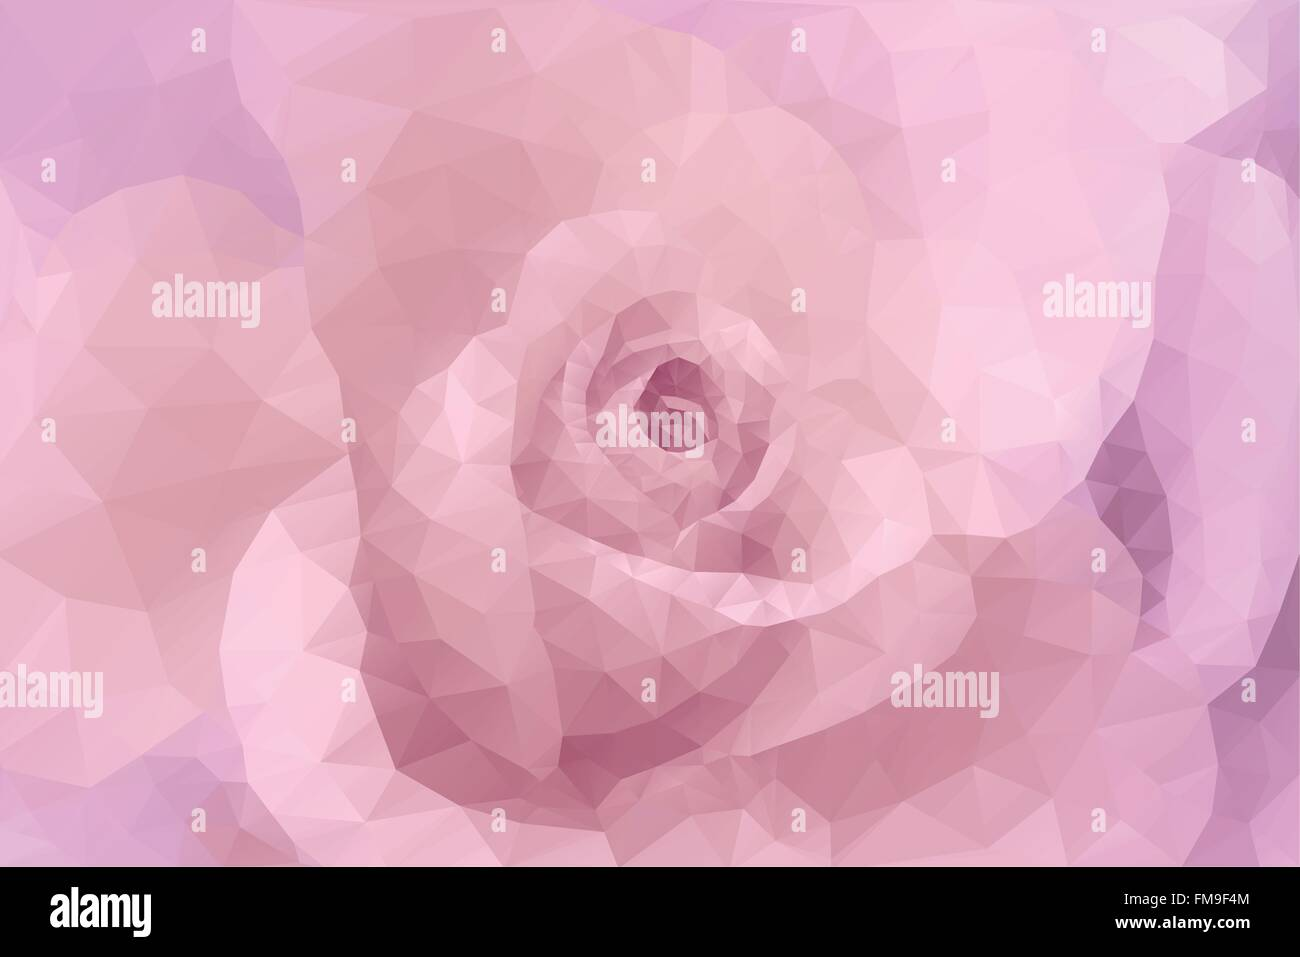 Abstract triangle polygon floral fashion gentle decorative pink wedding background - Stock Vector